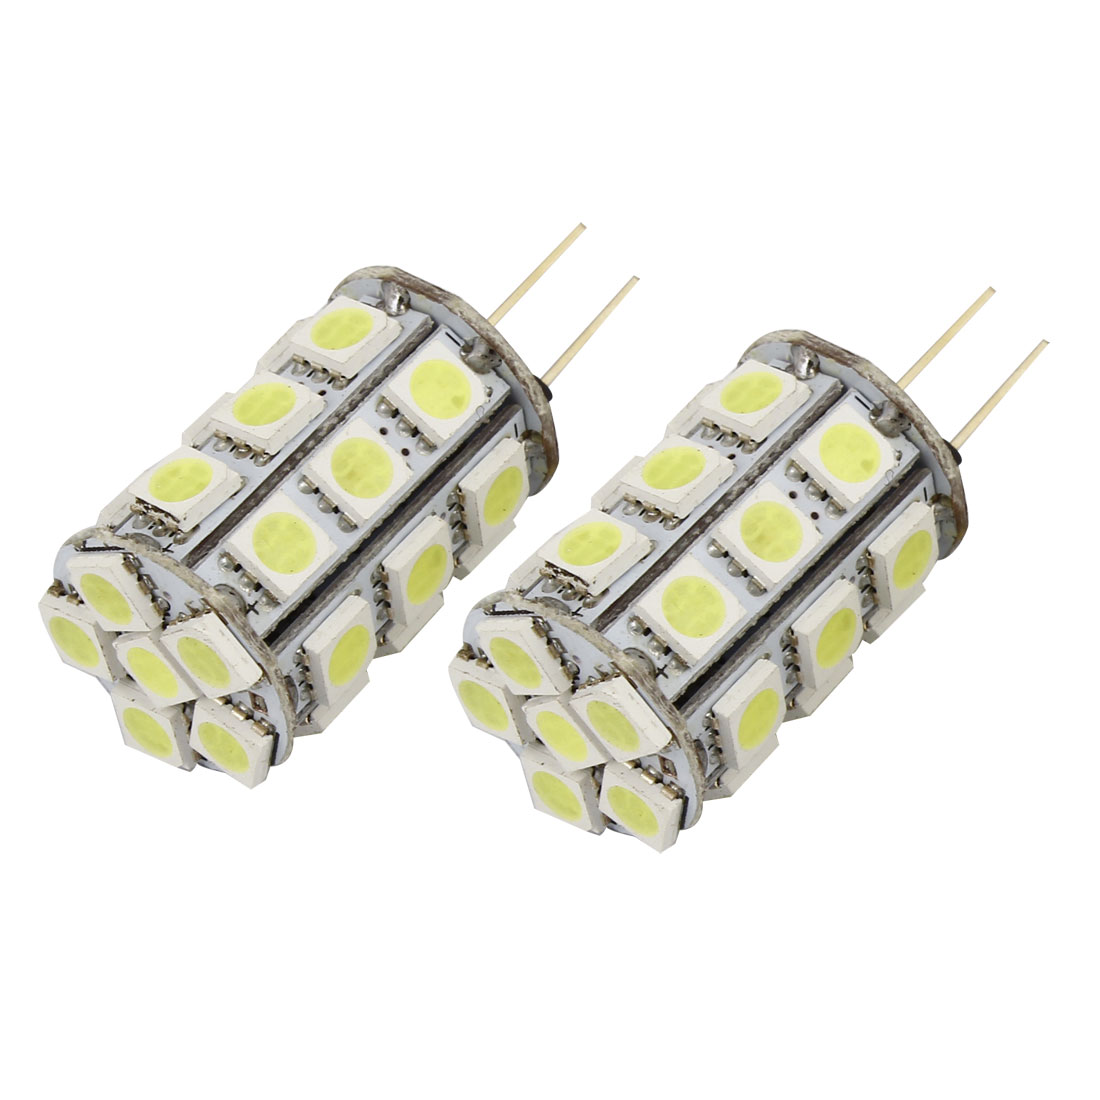 Car Bin Pin G4 5050 SMD 27-LEDs White Marine Boat Camper Light Bulb Lamp Internal